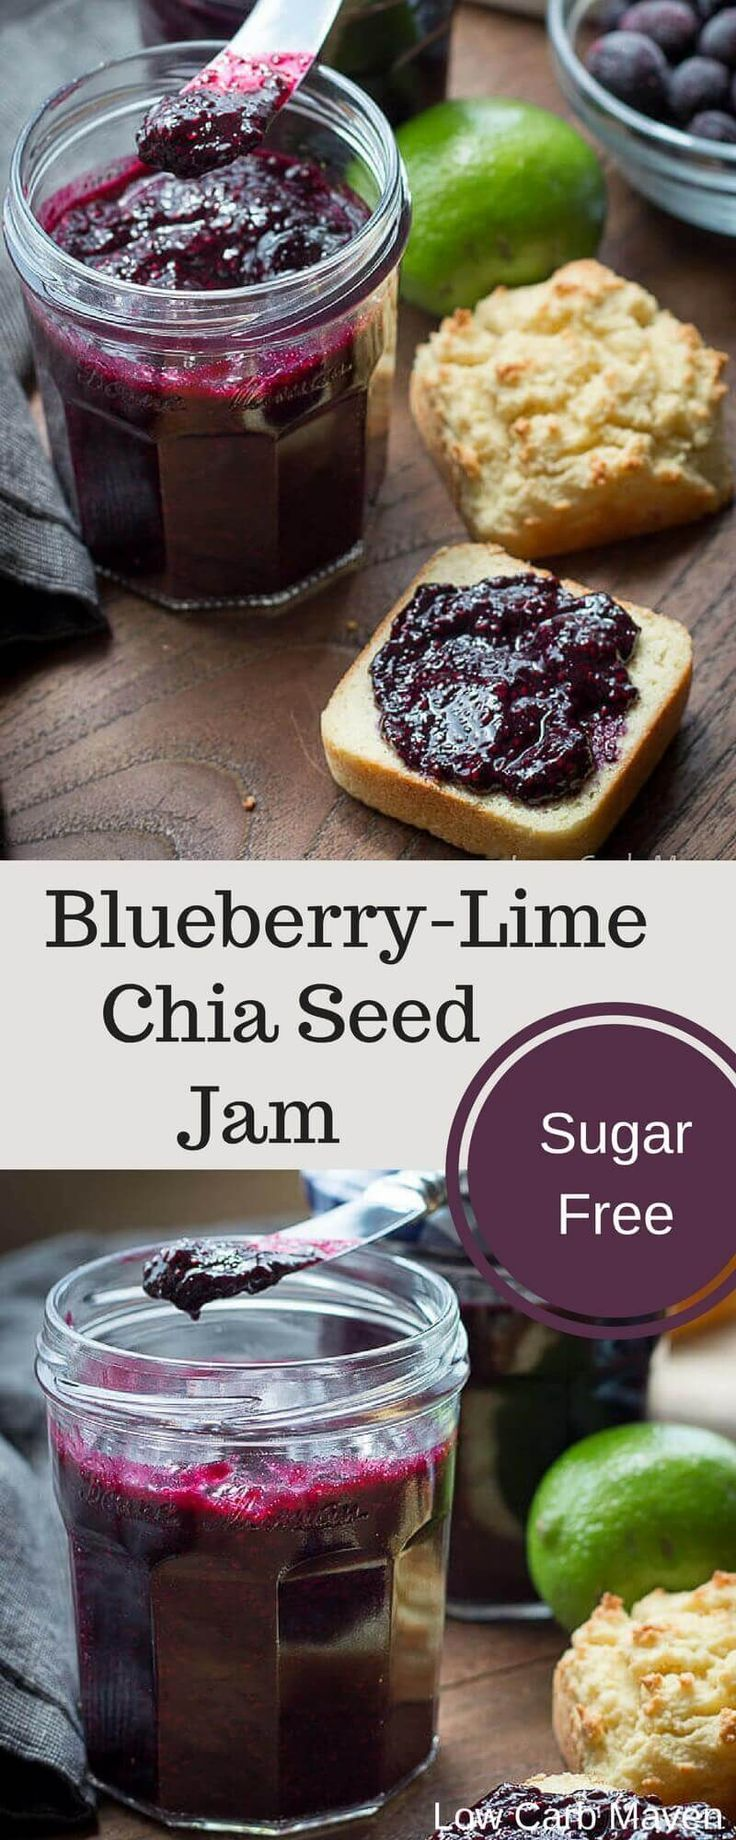 A tangy sugar-free blueberry jam thickened with chia seeds and flavored with lime. This no pectin jam is absolutely delicious and perfect for any low carb keto diet.